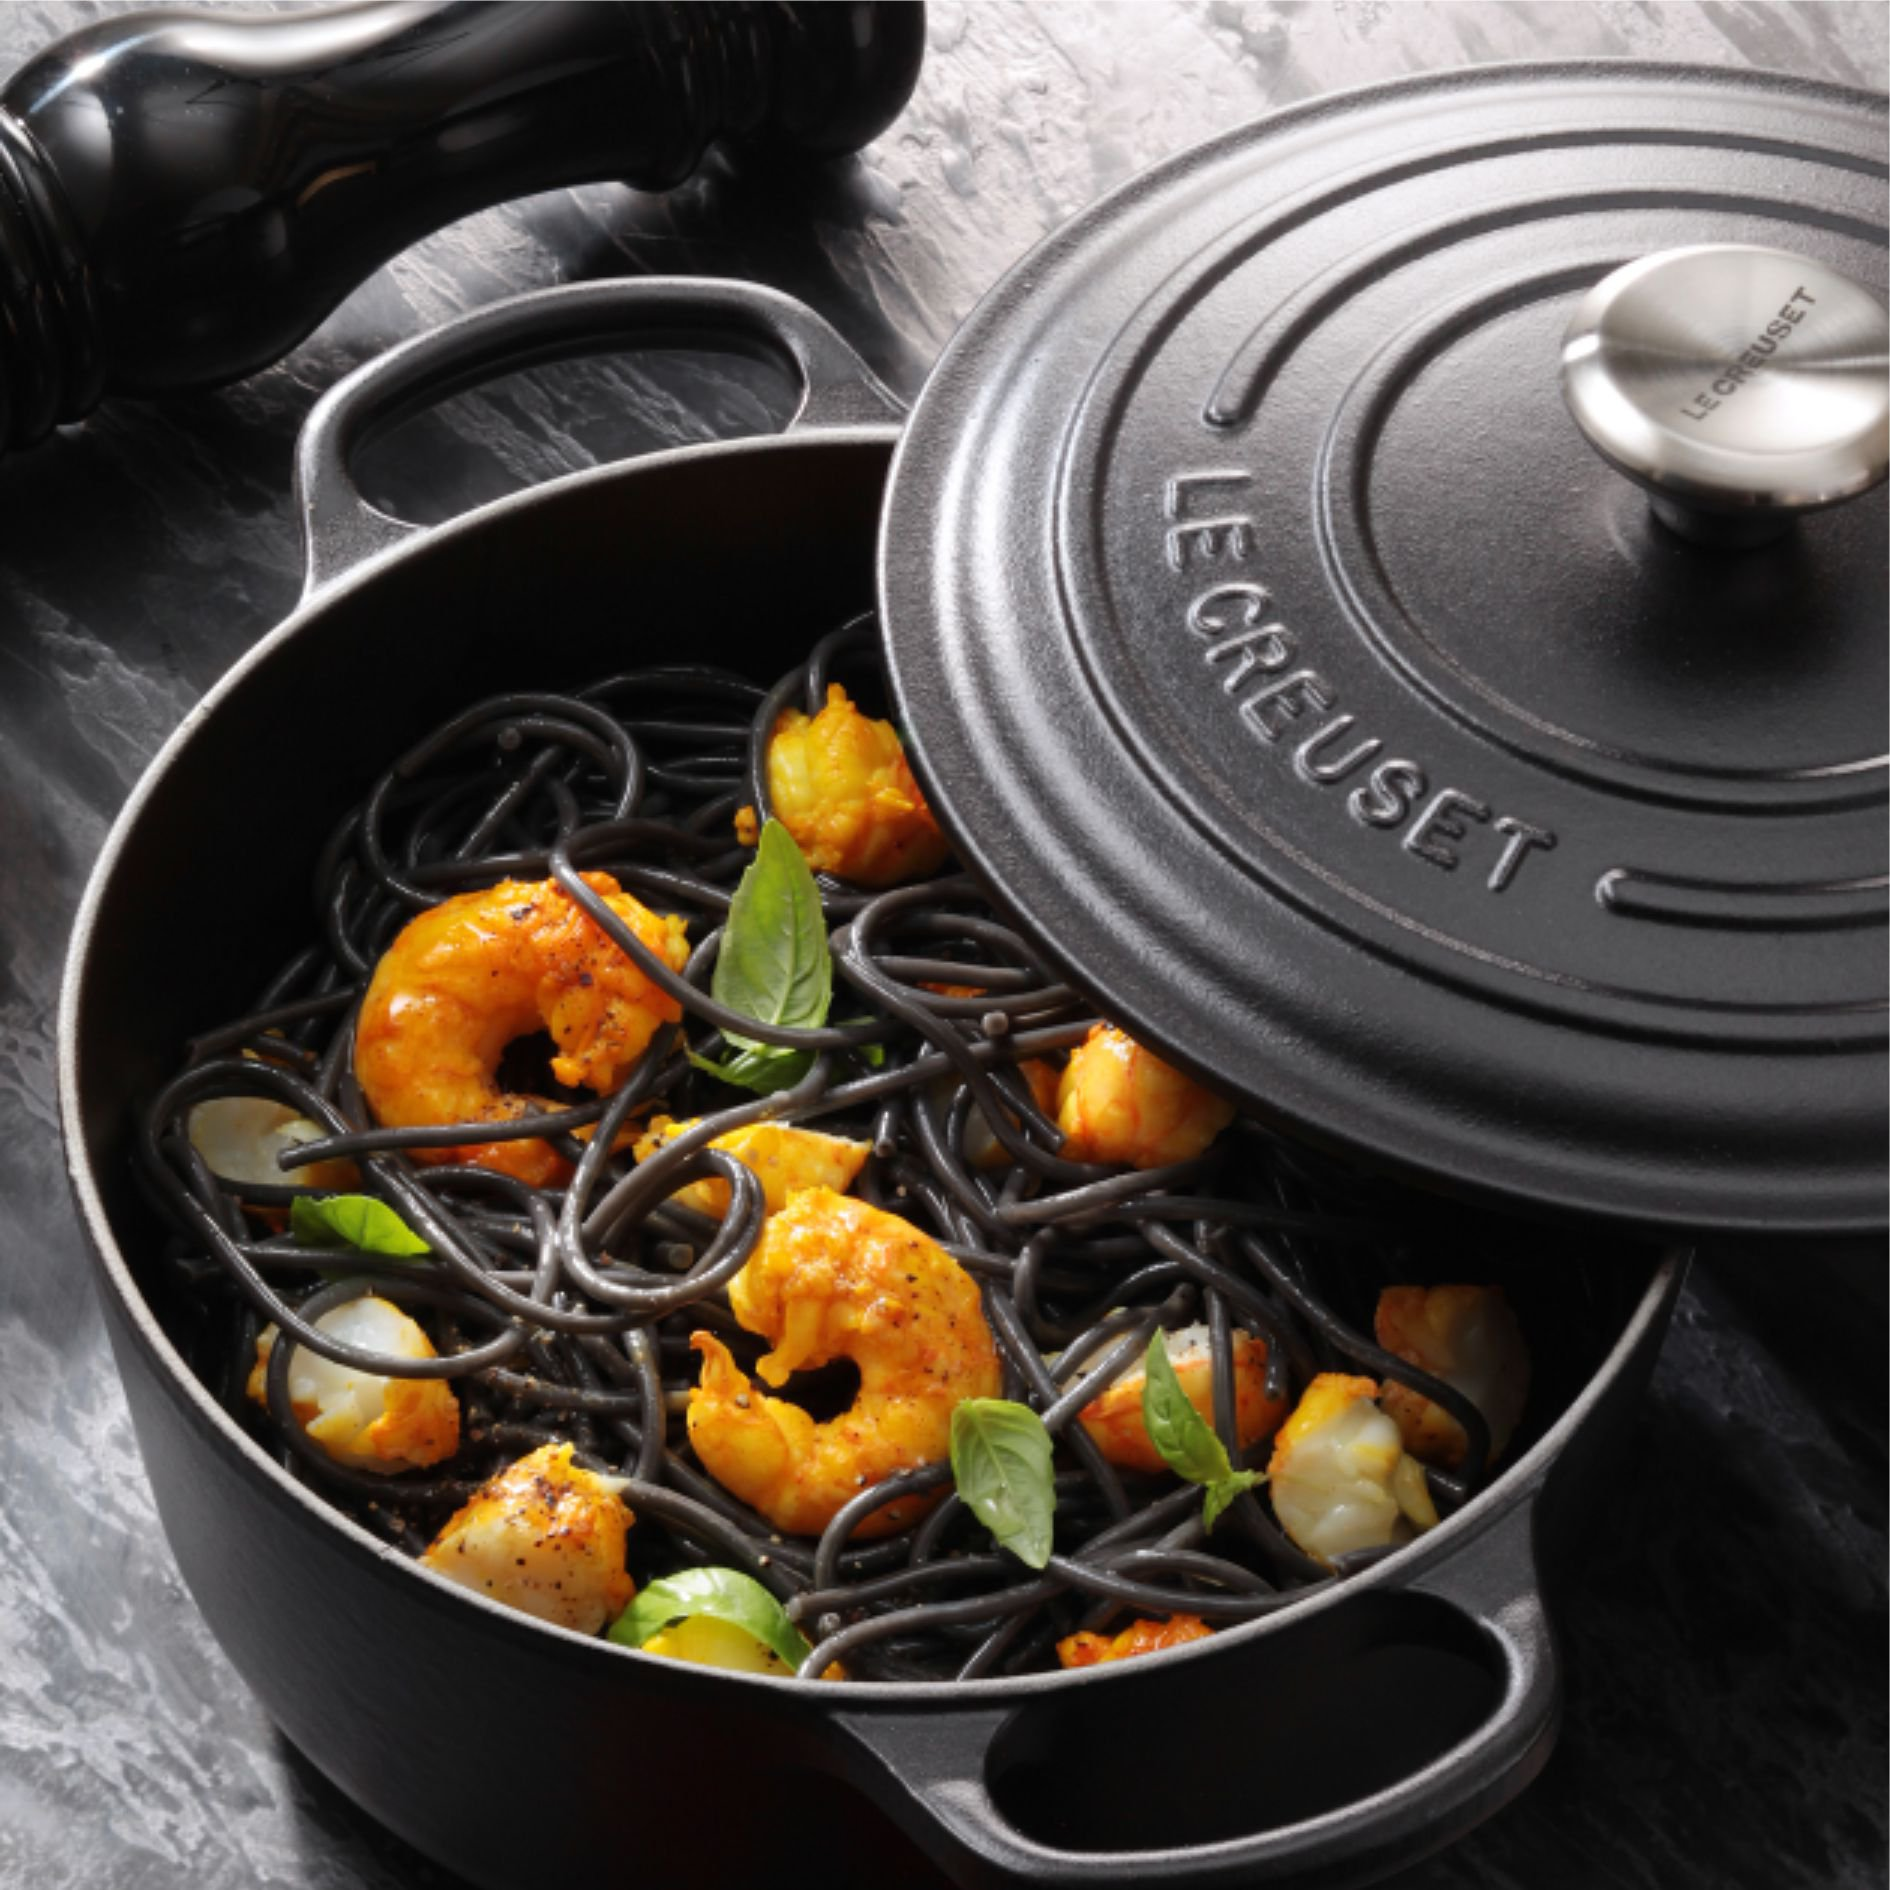 Tradition Le Creuset